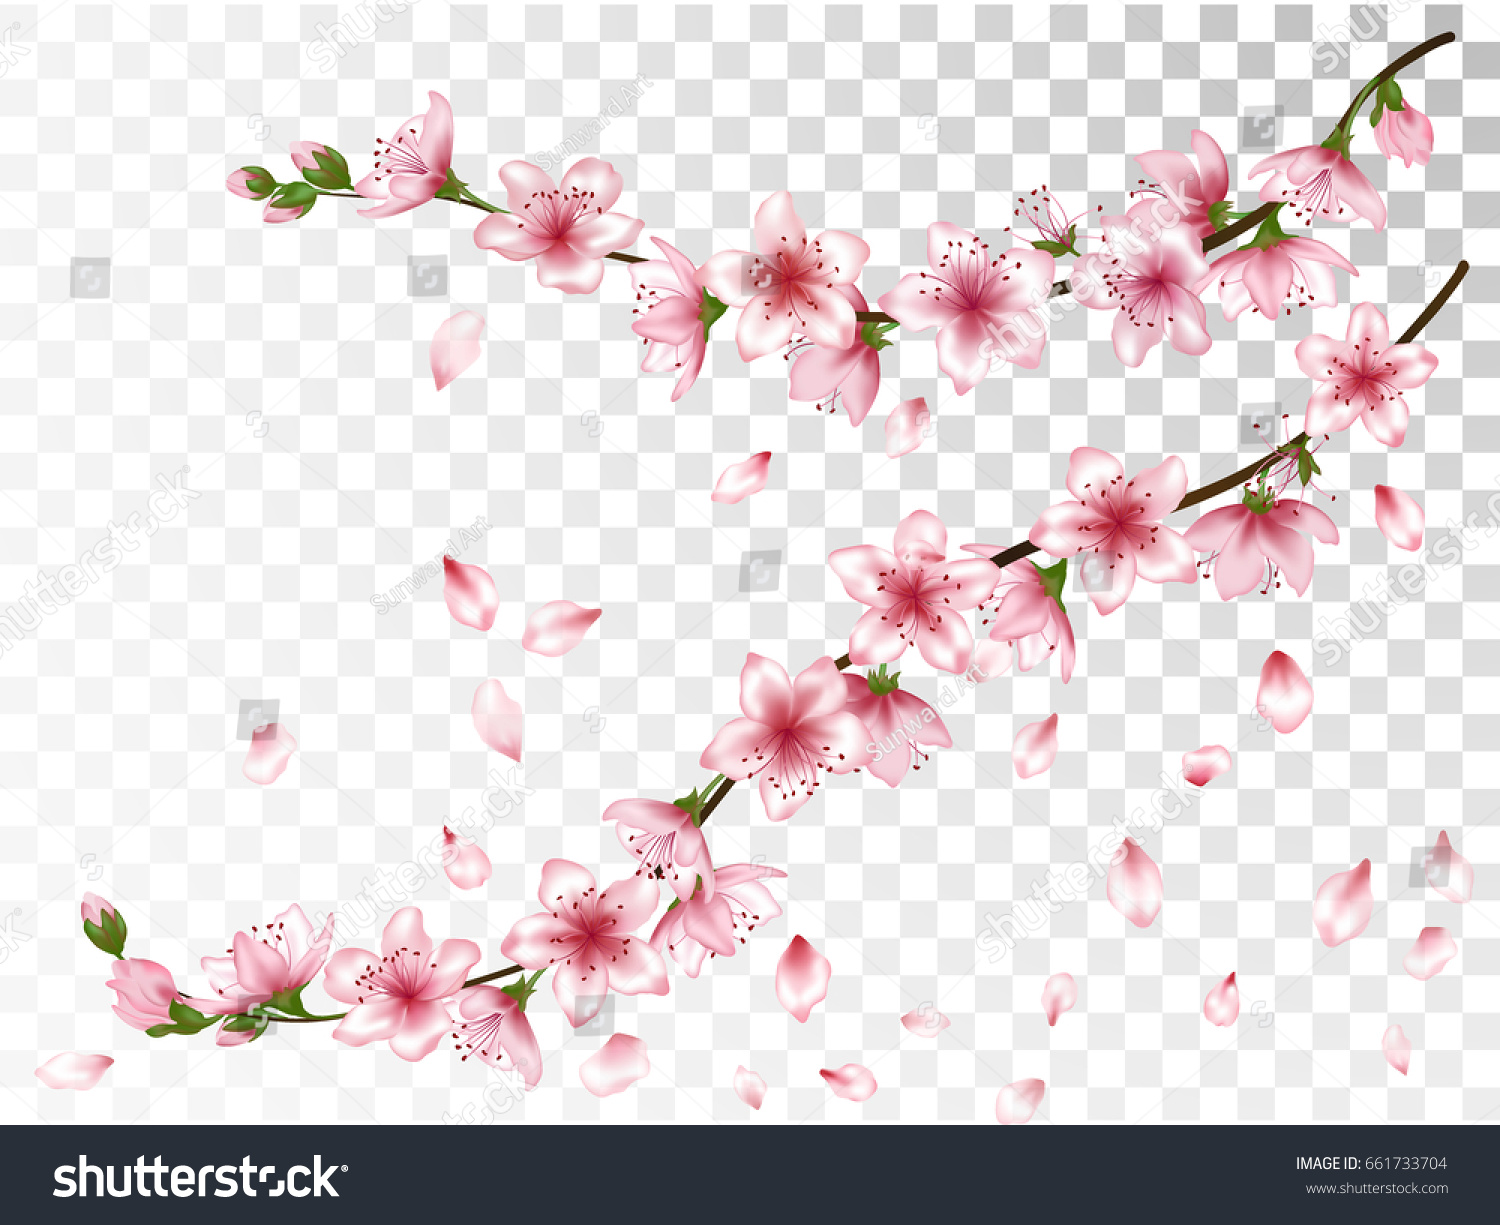 Flying Petals And Blooming Cherry Tree Twigs Set Blossom Collection On Transparent Background Vector